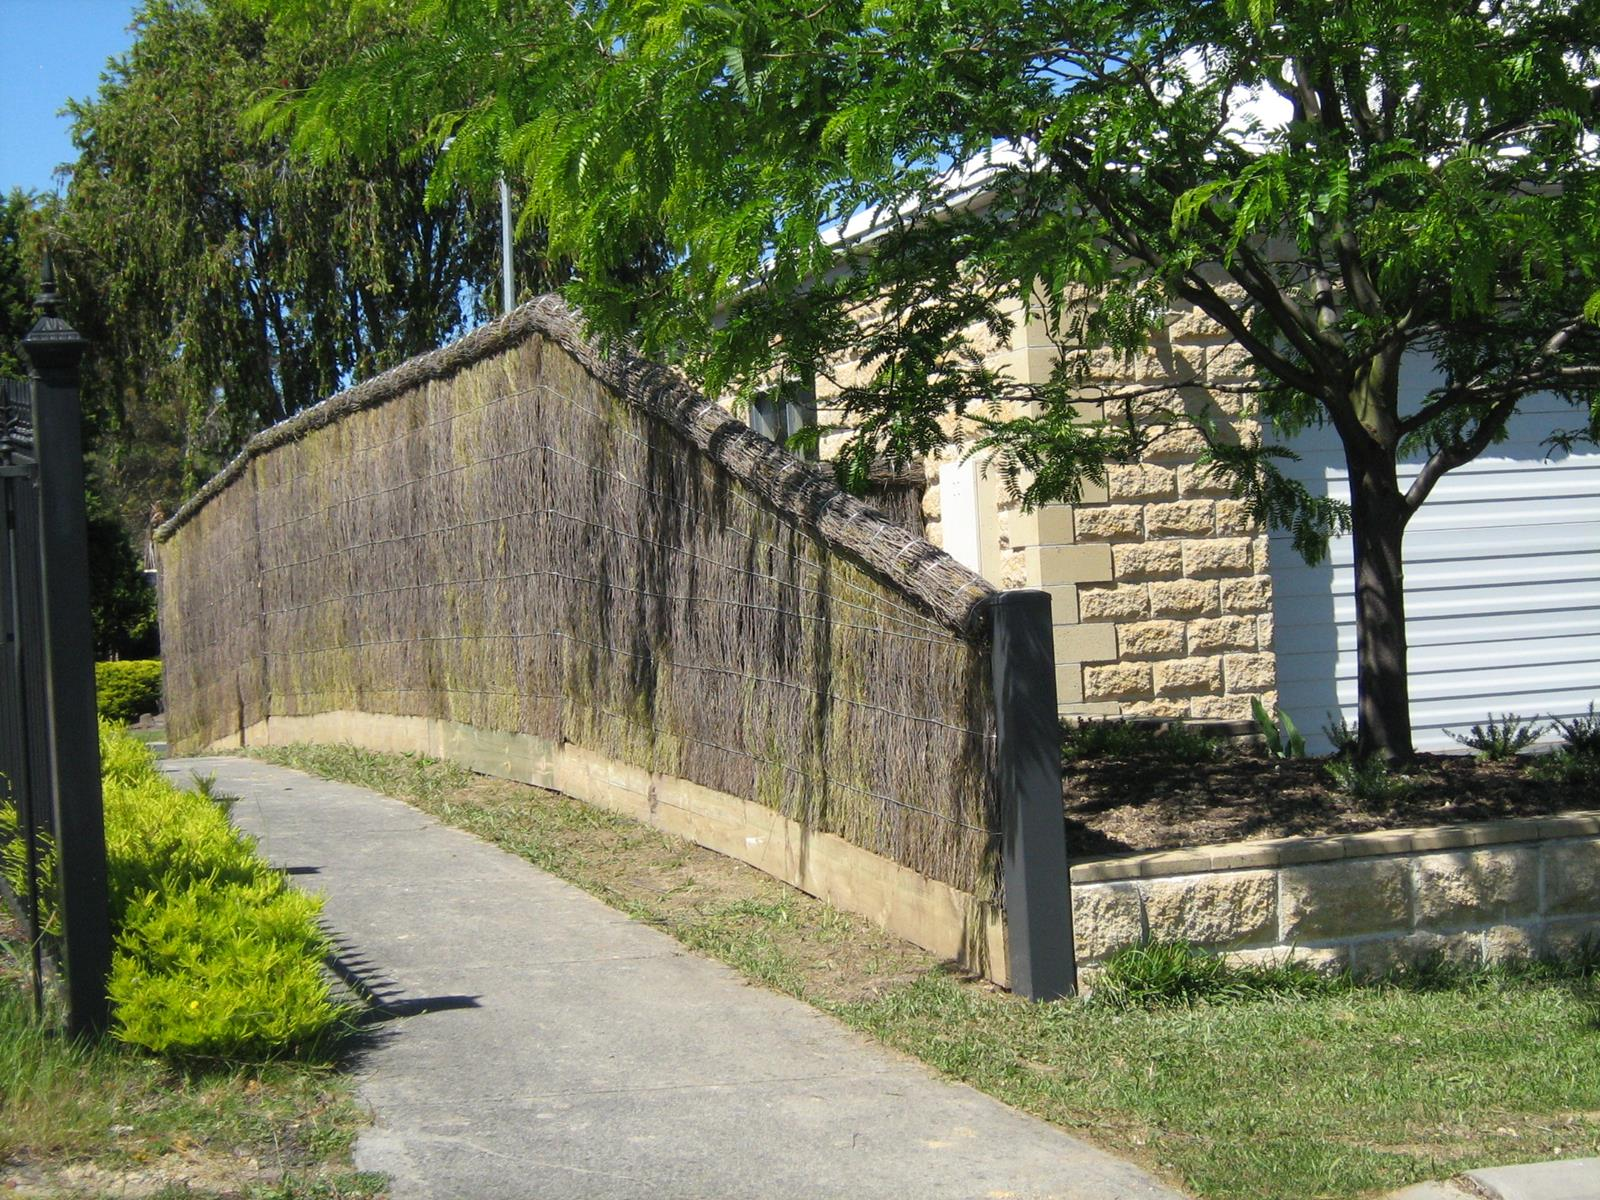 Alteration to Brushwood Fence